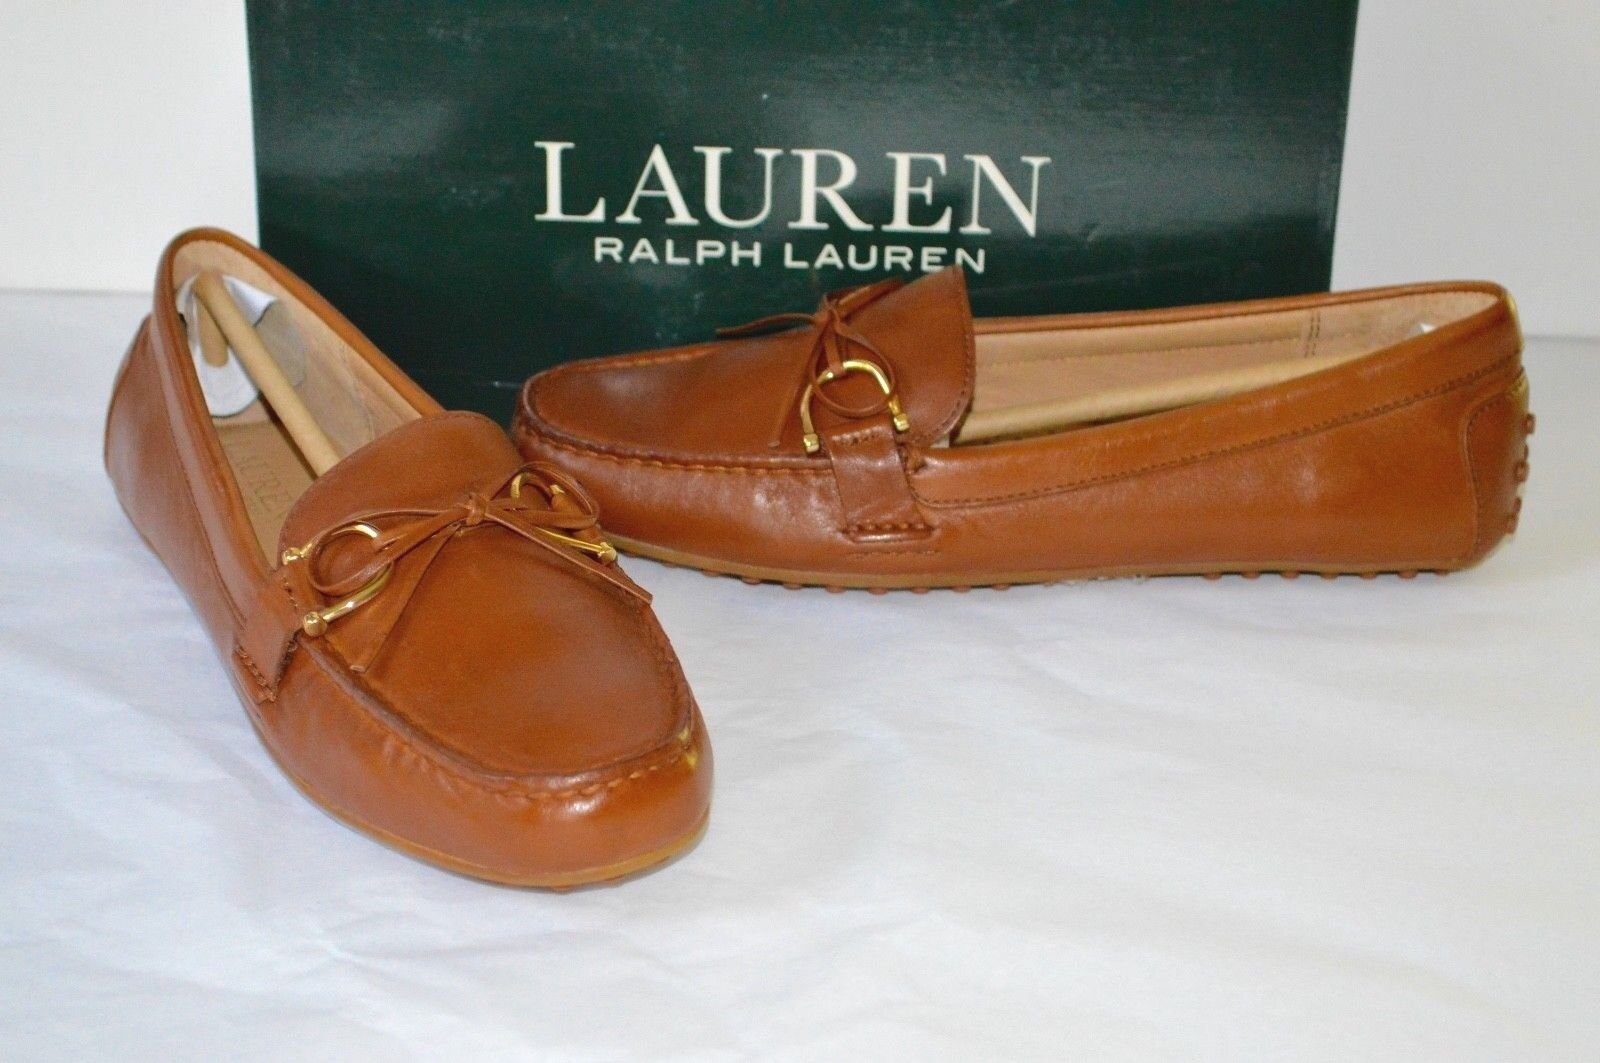 ba0c3def441 Women s Ralph Lauren Briley Driving Moccasins Loafers Soft Leather ...